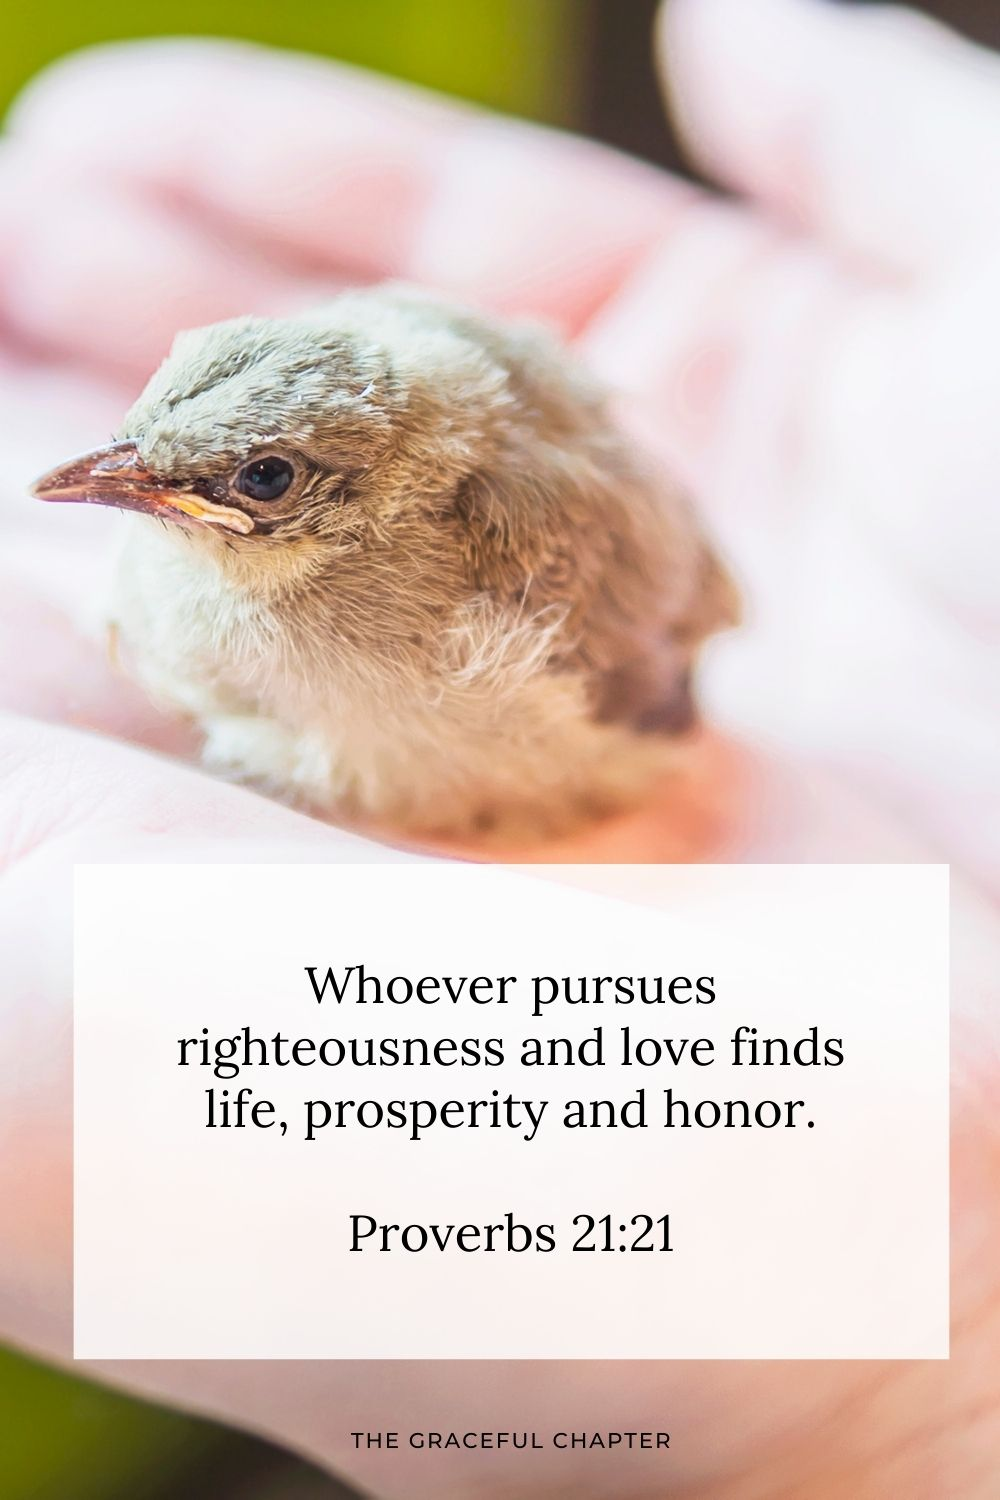 Whoever pursues righteousness and love finds life, prosperity and honor. Proverbs 21:21